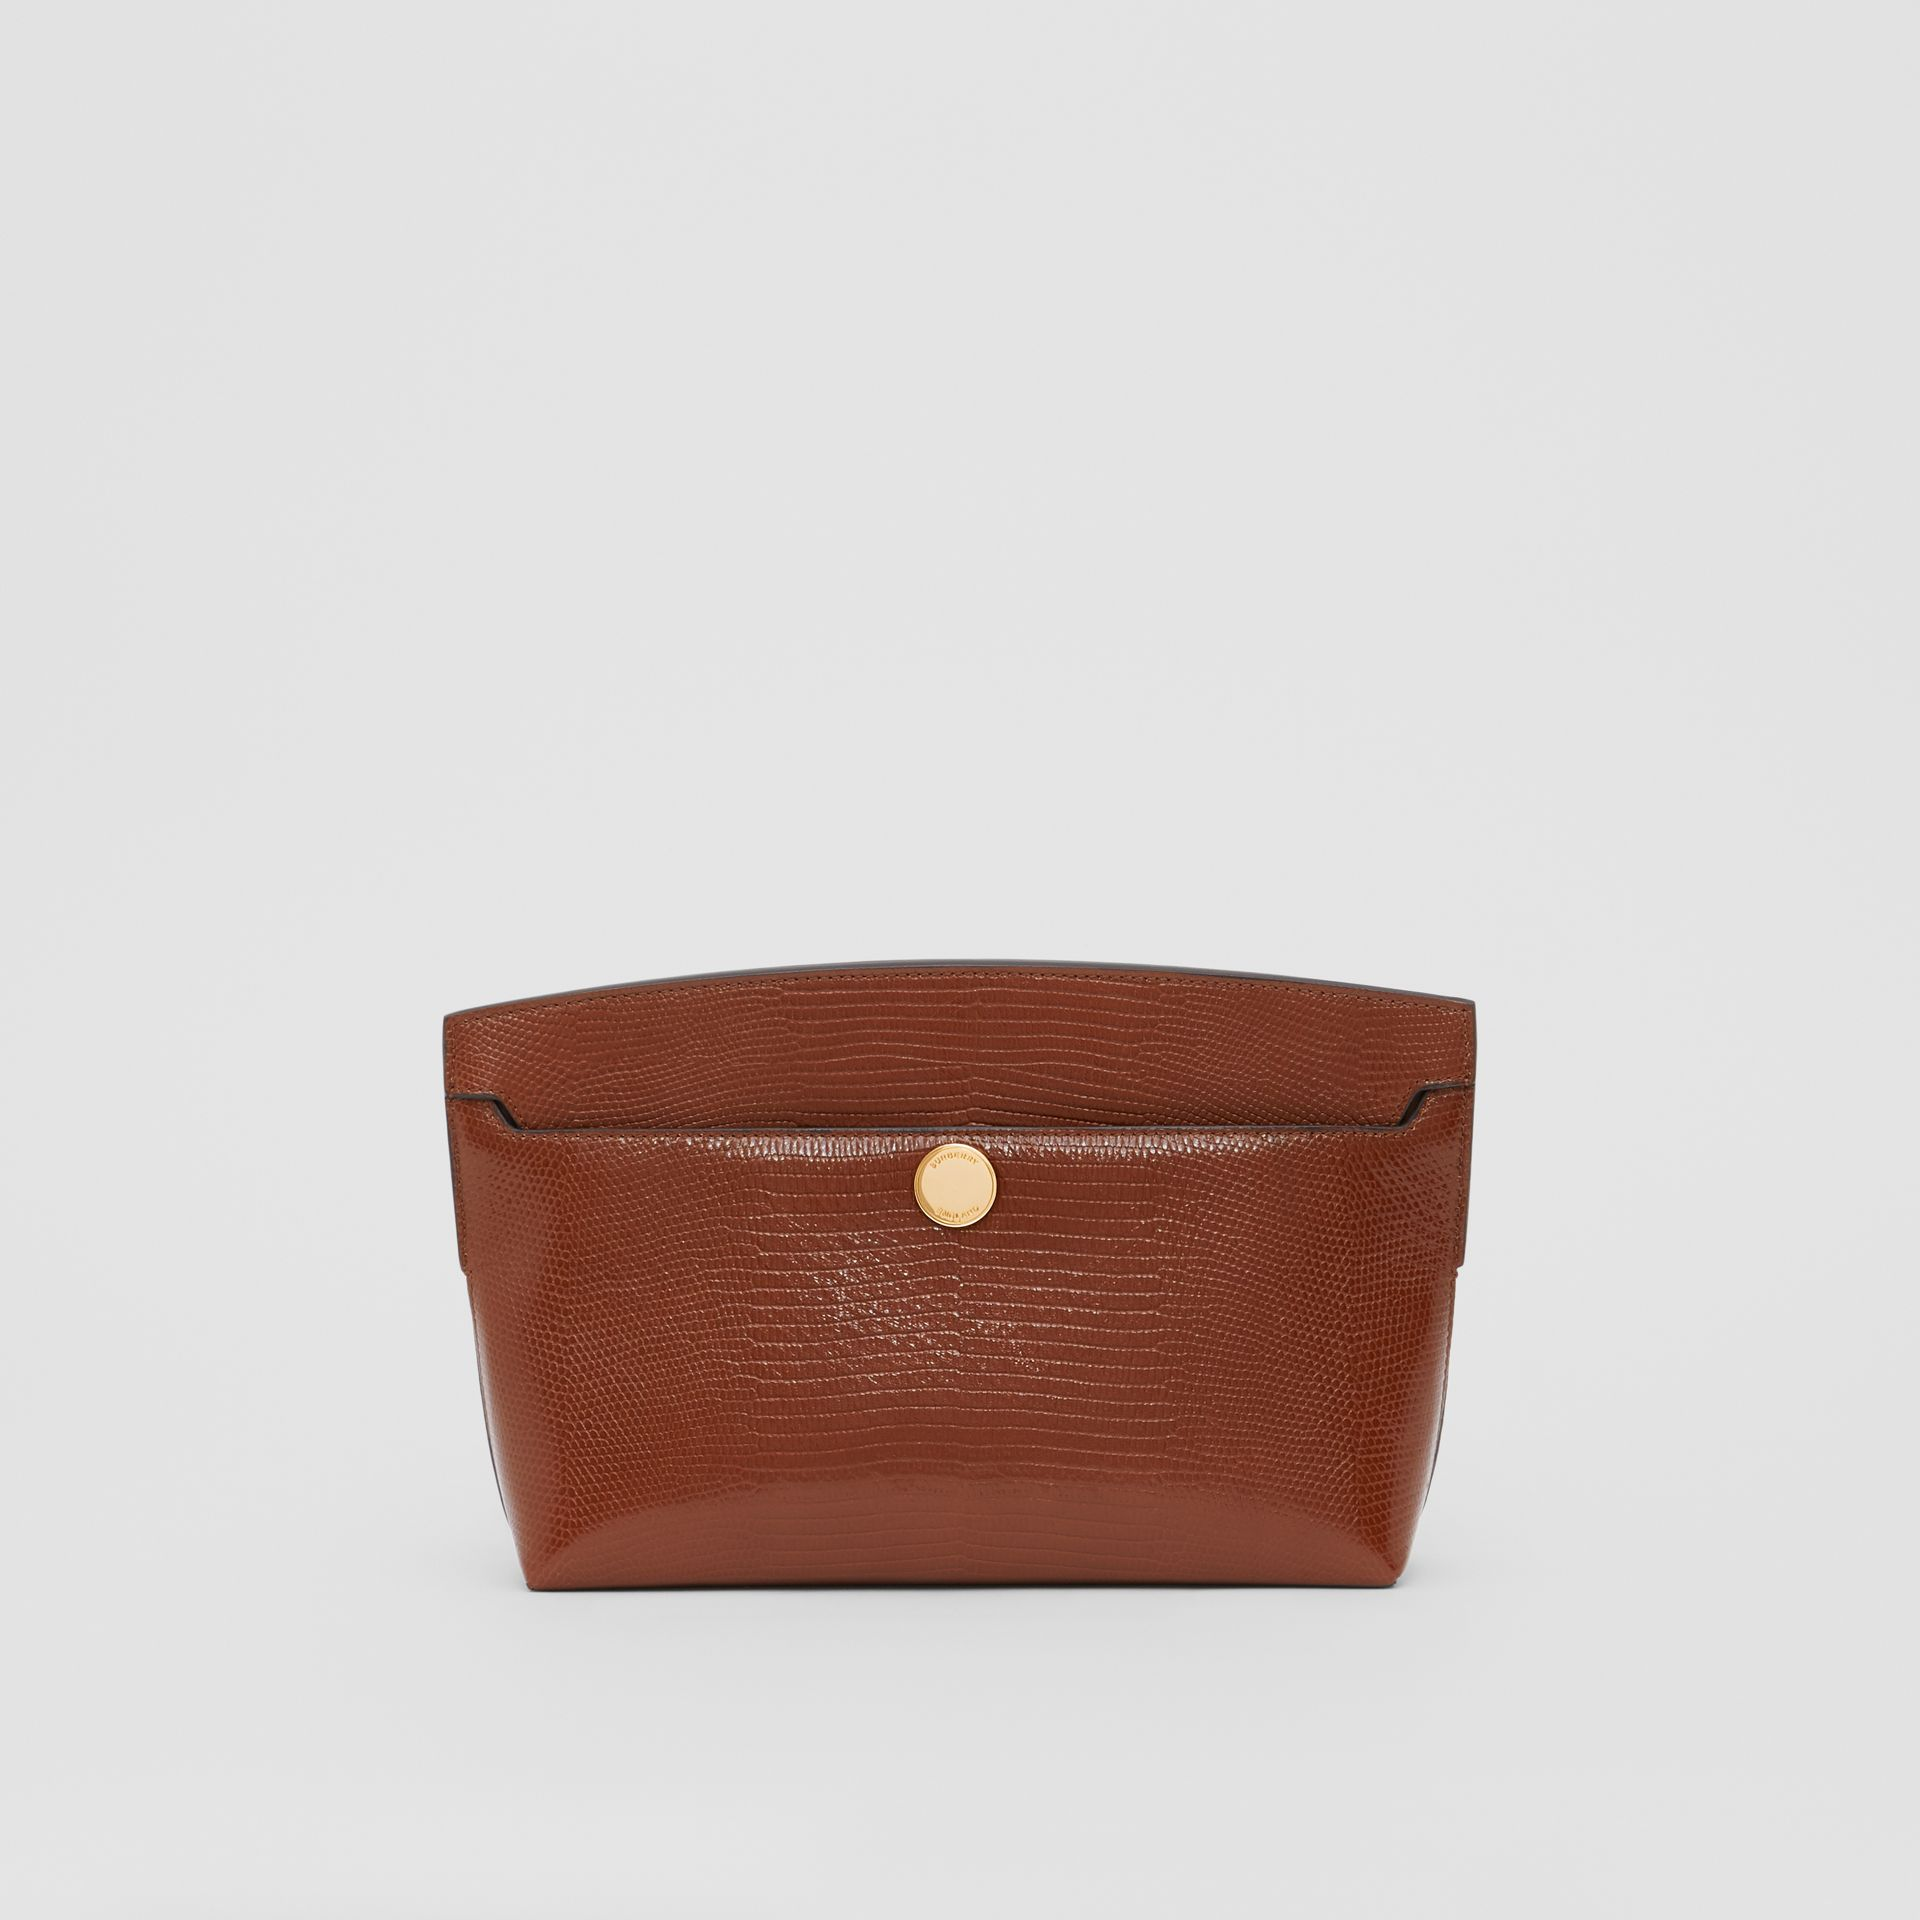 Embossed Deerskin Society Clutch in Tan - Women | Burberry - gallery image 0